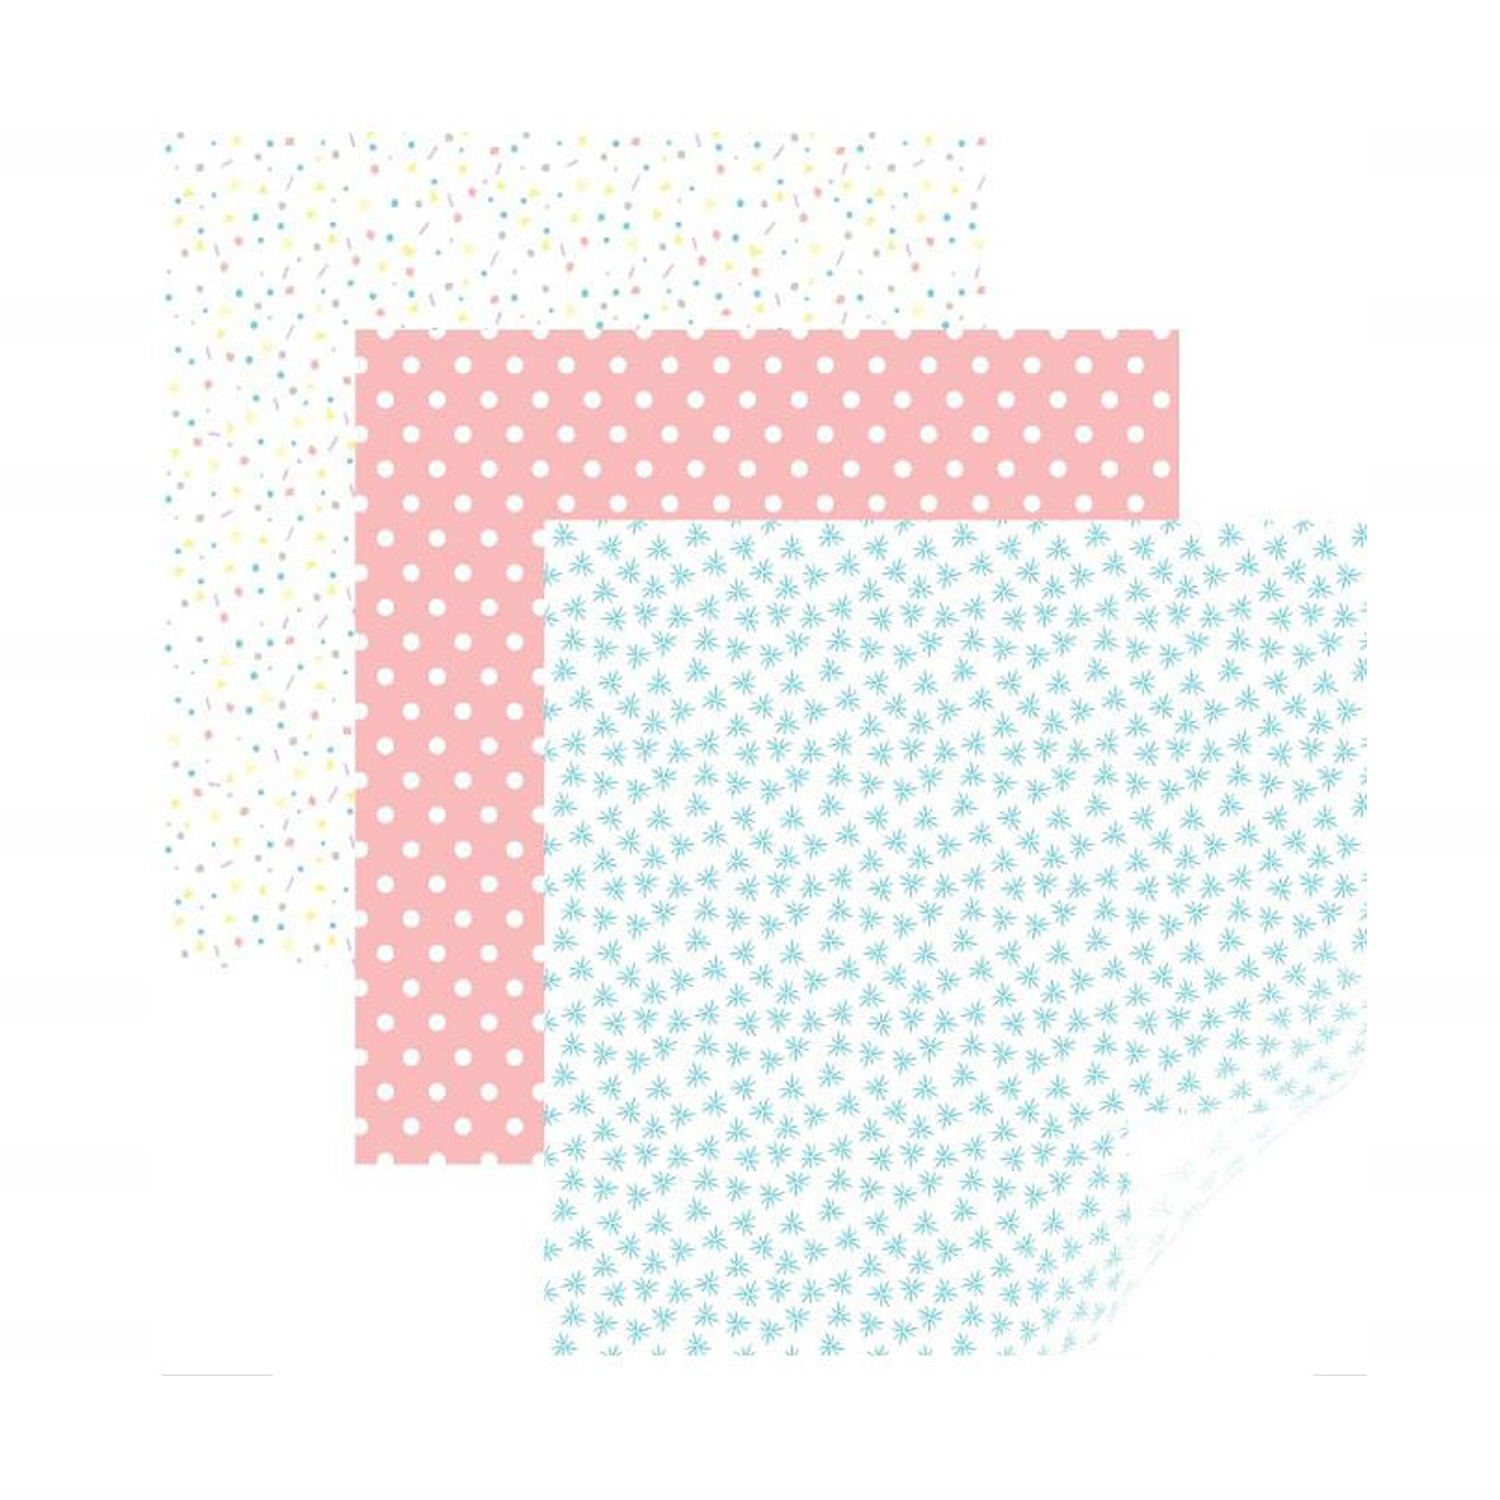 Cricut - StrongBond - Patterned Iron-On - Party Time Pastel Sampler